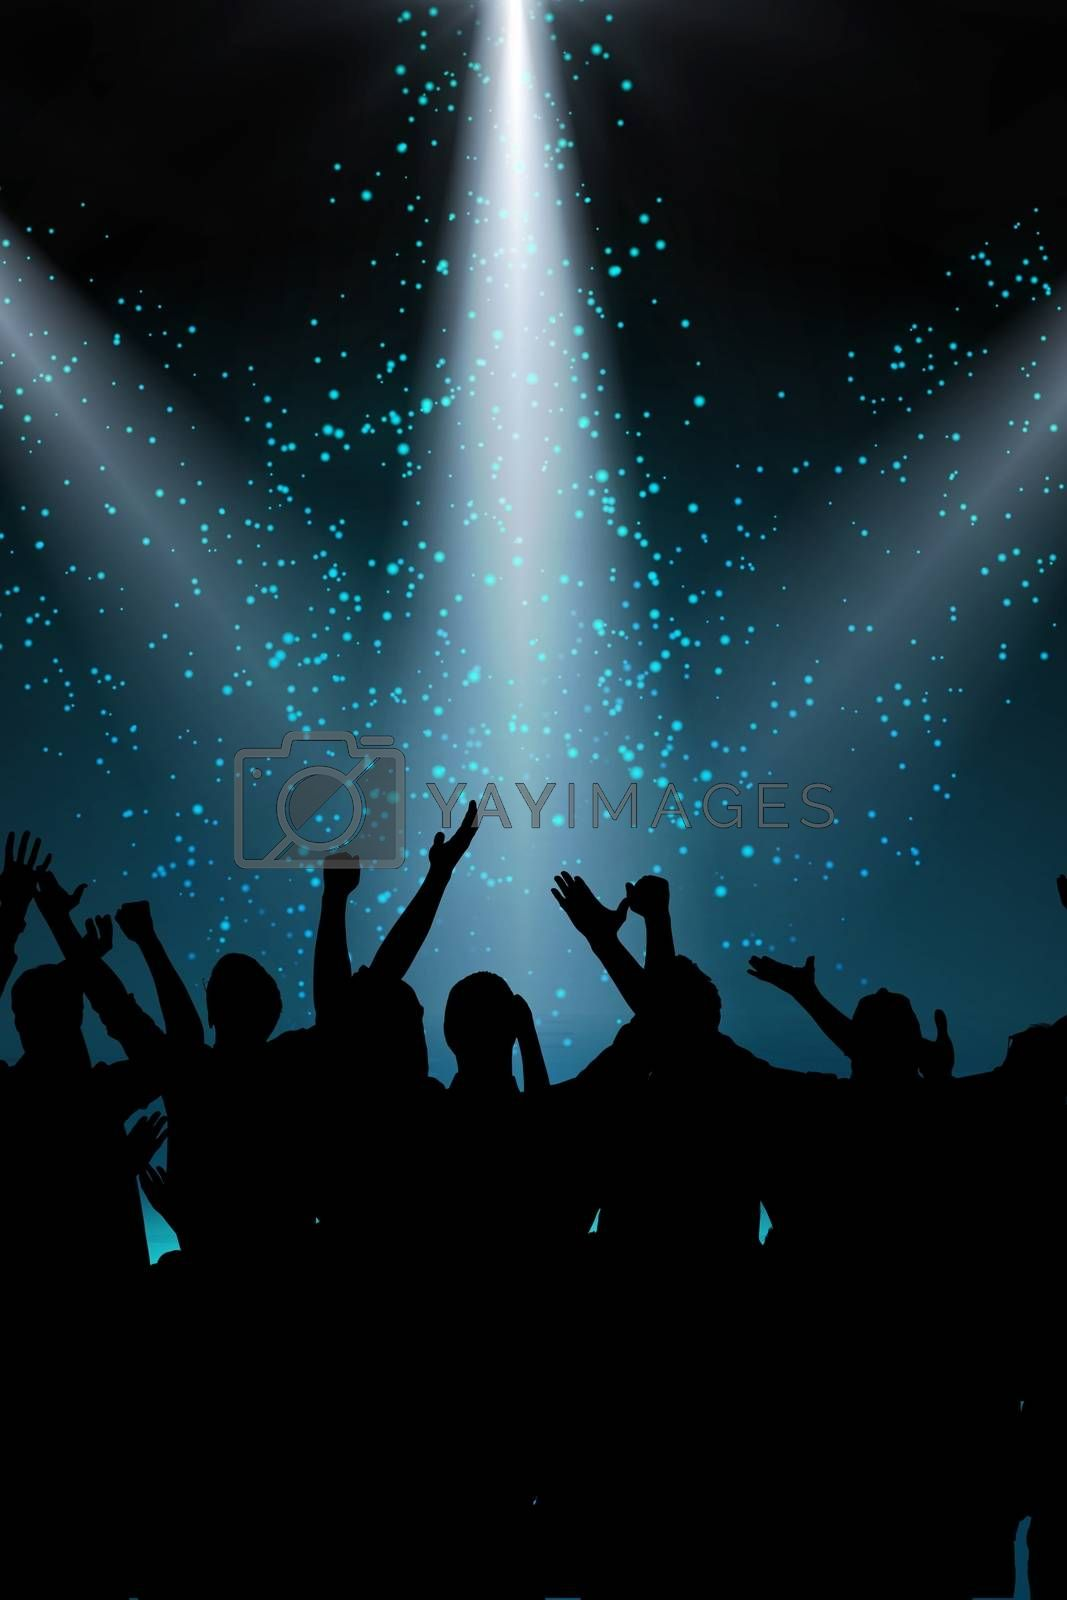 Composite image of people enjoying a concert in a blue background